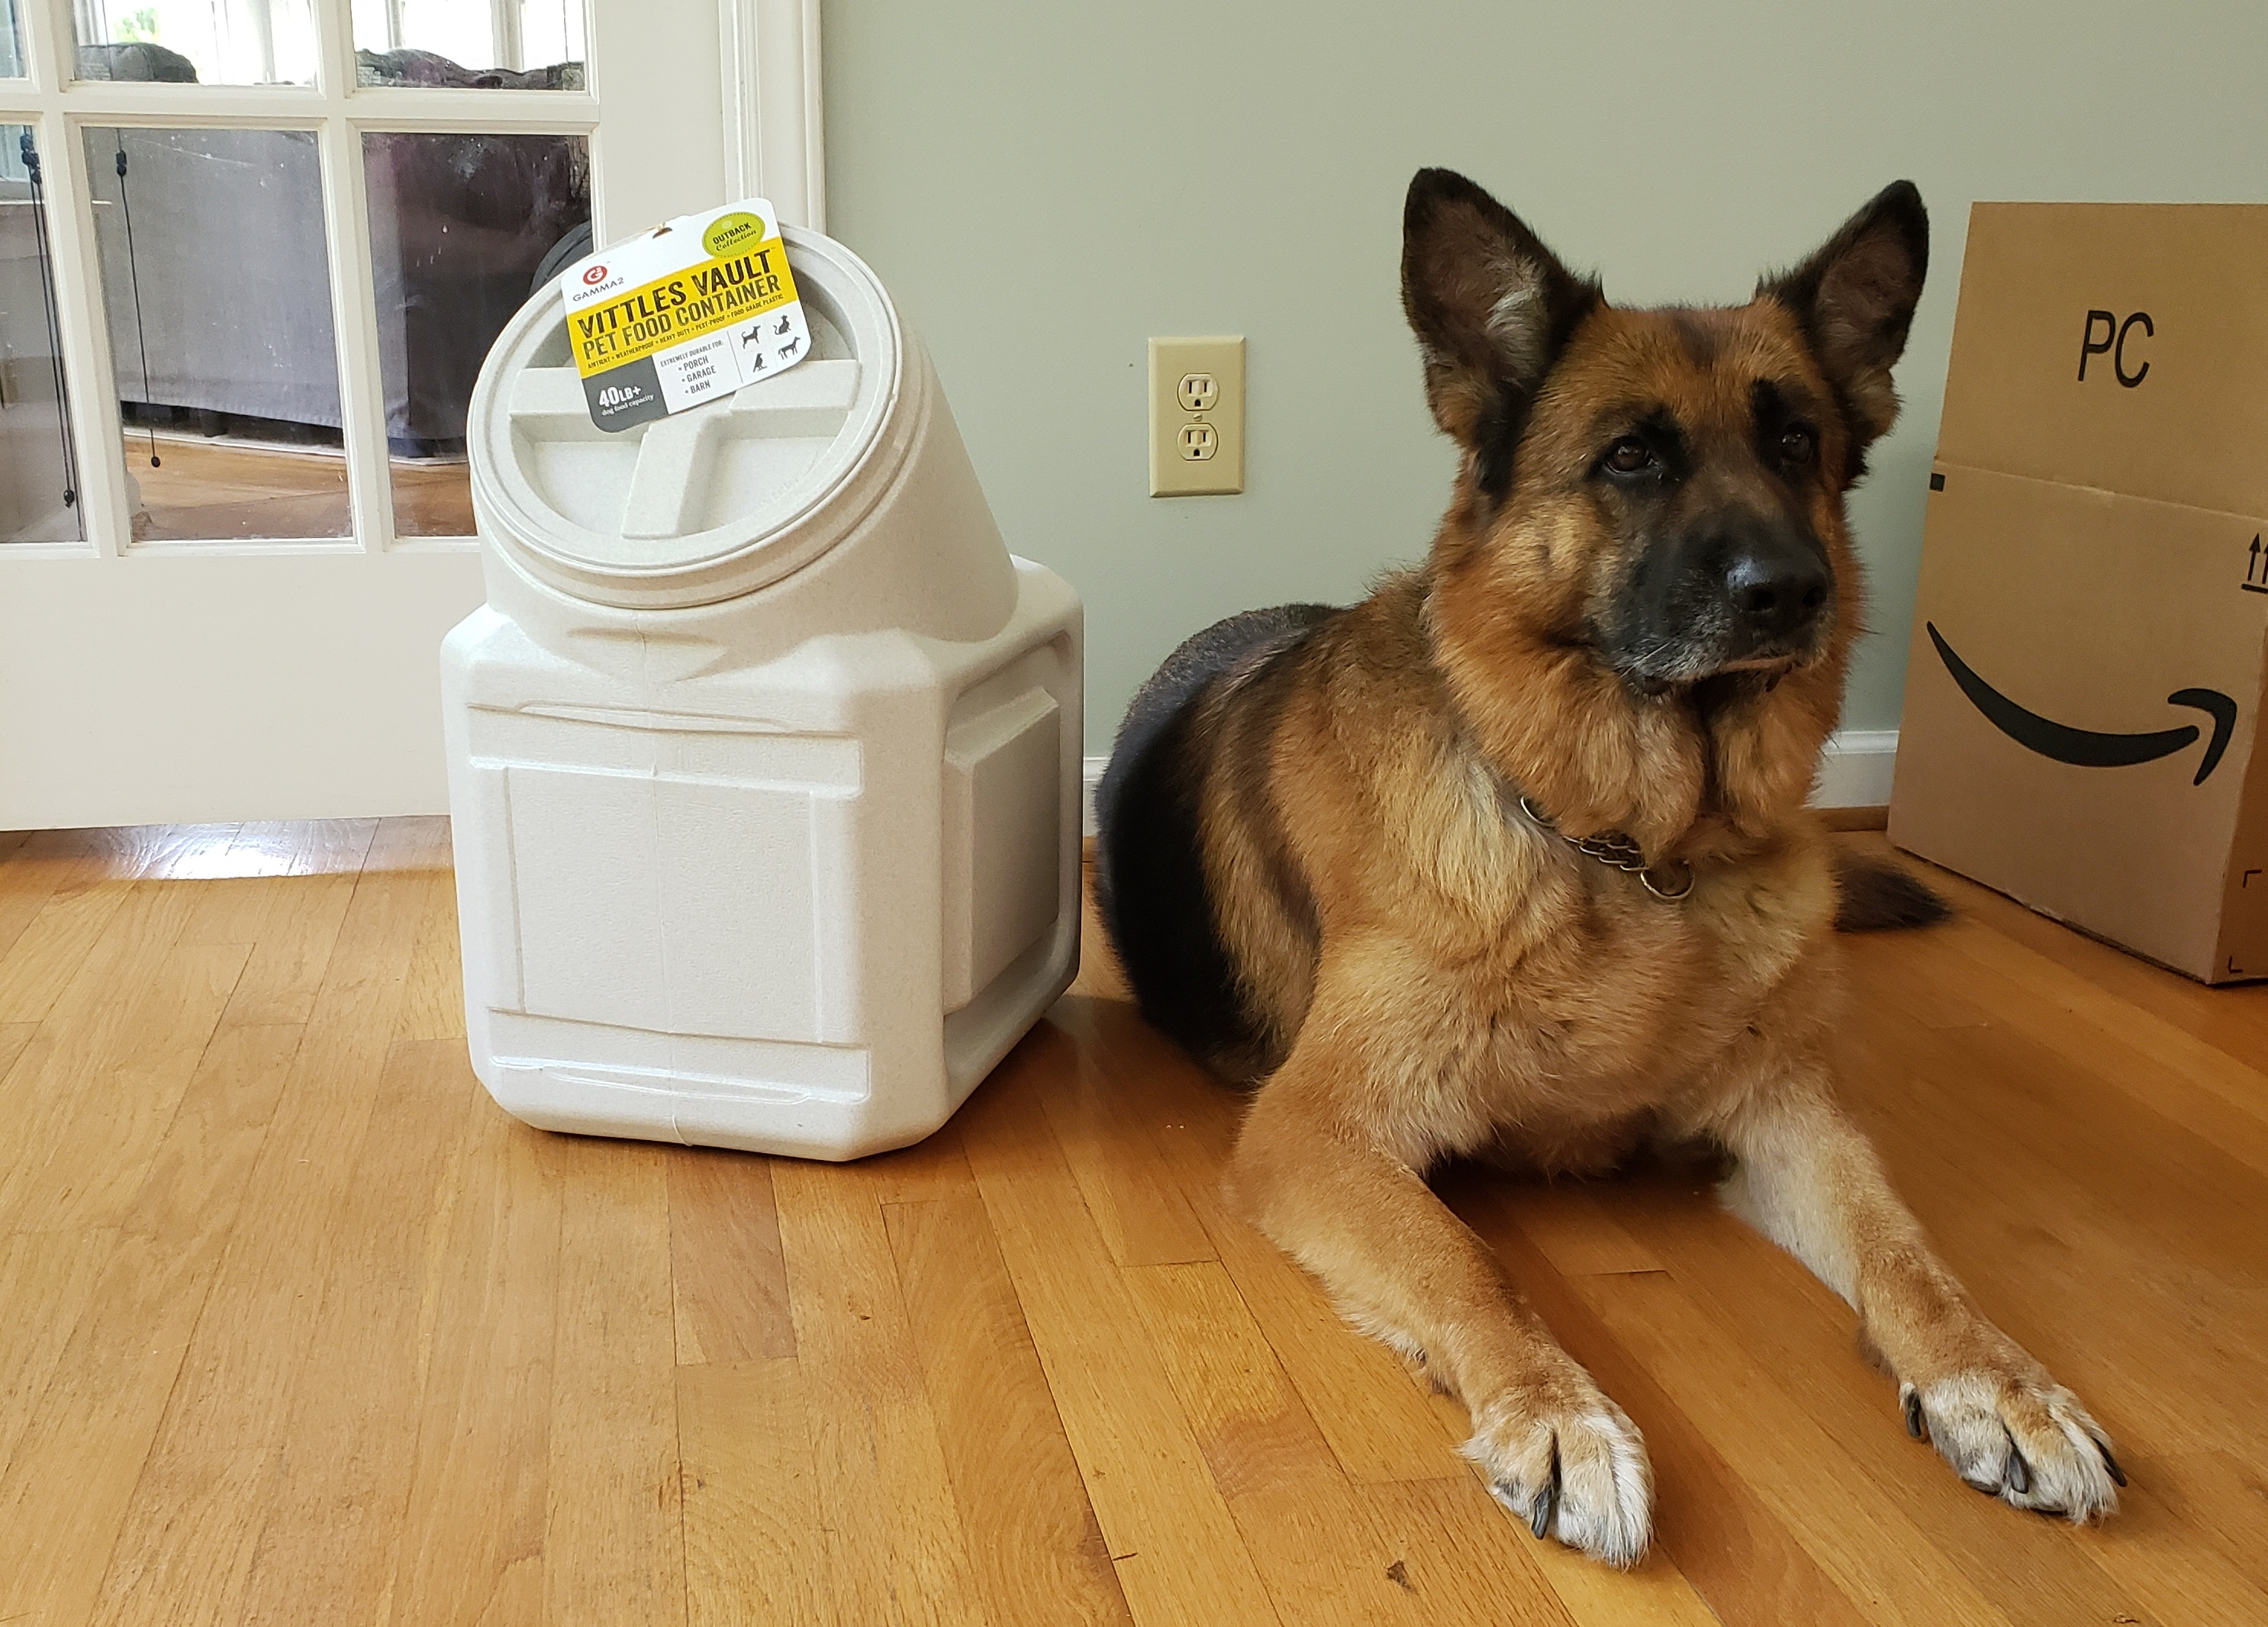 Aura German Shepherd Dog beside her new dog food container